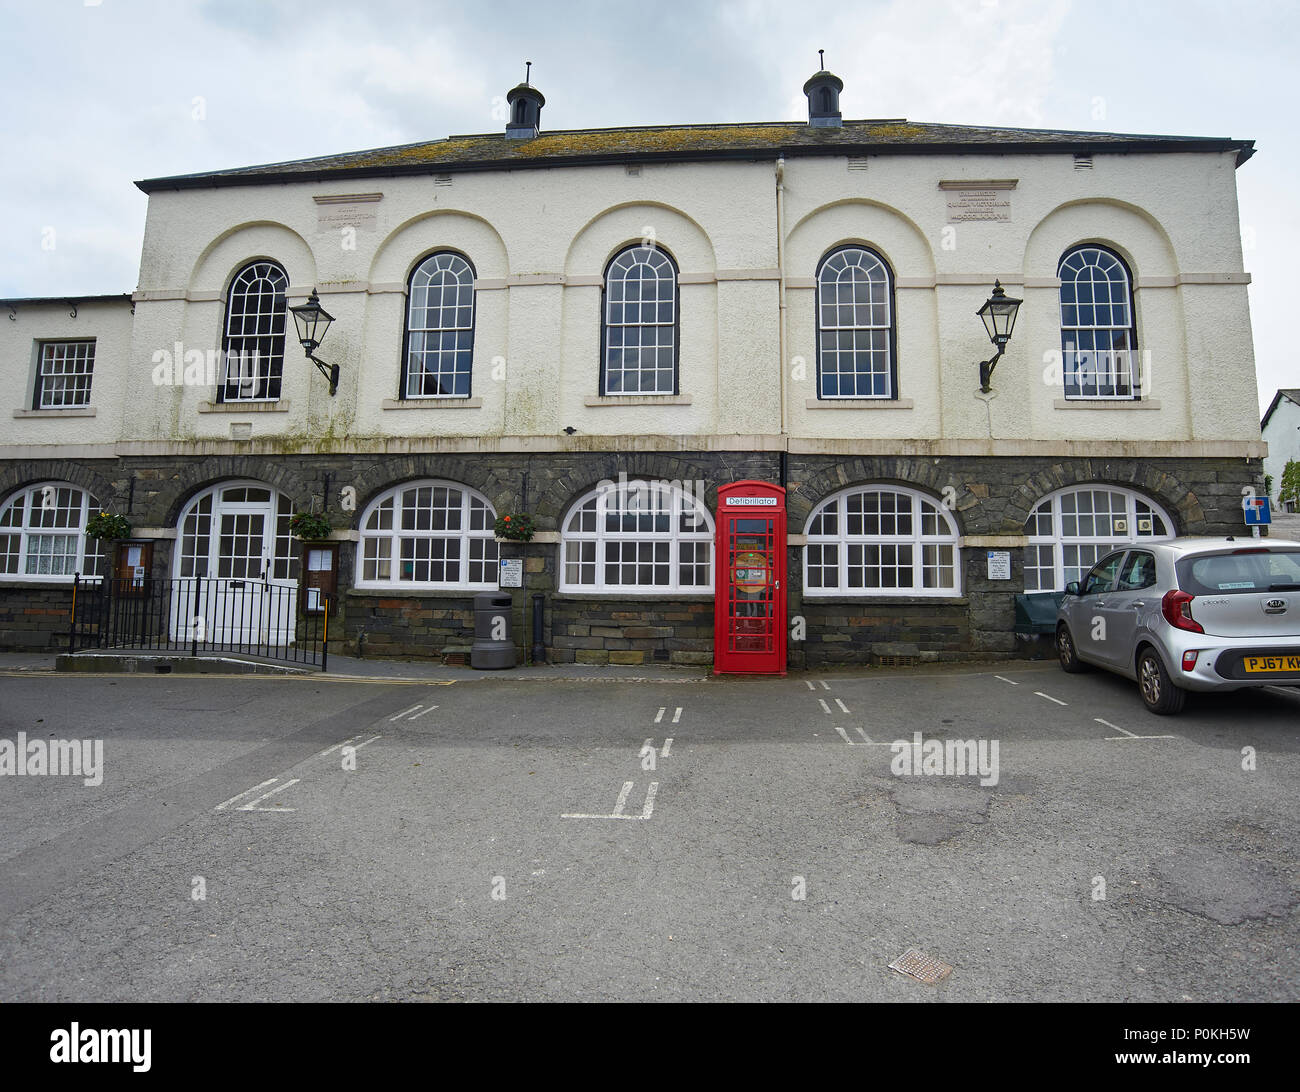 A telephone box in Hawkshead, Cumbria, UK, which now contains a defibrillator instead of a telephone - Stock Image